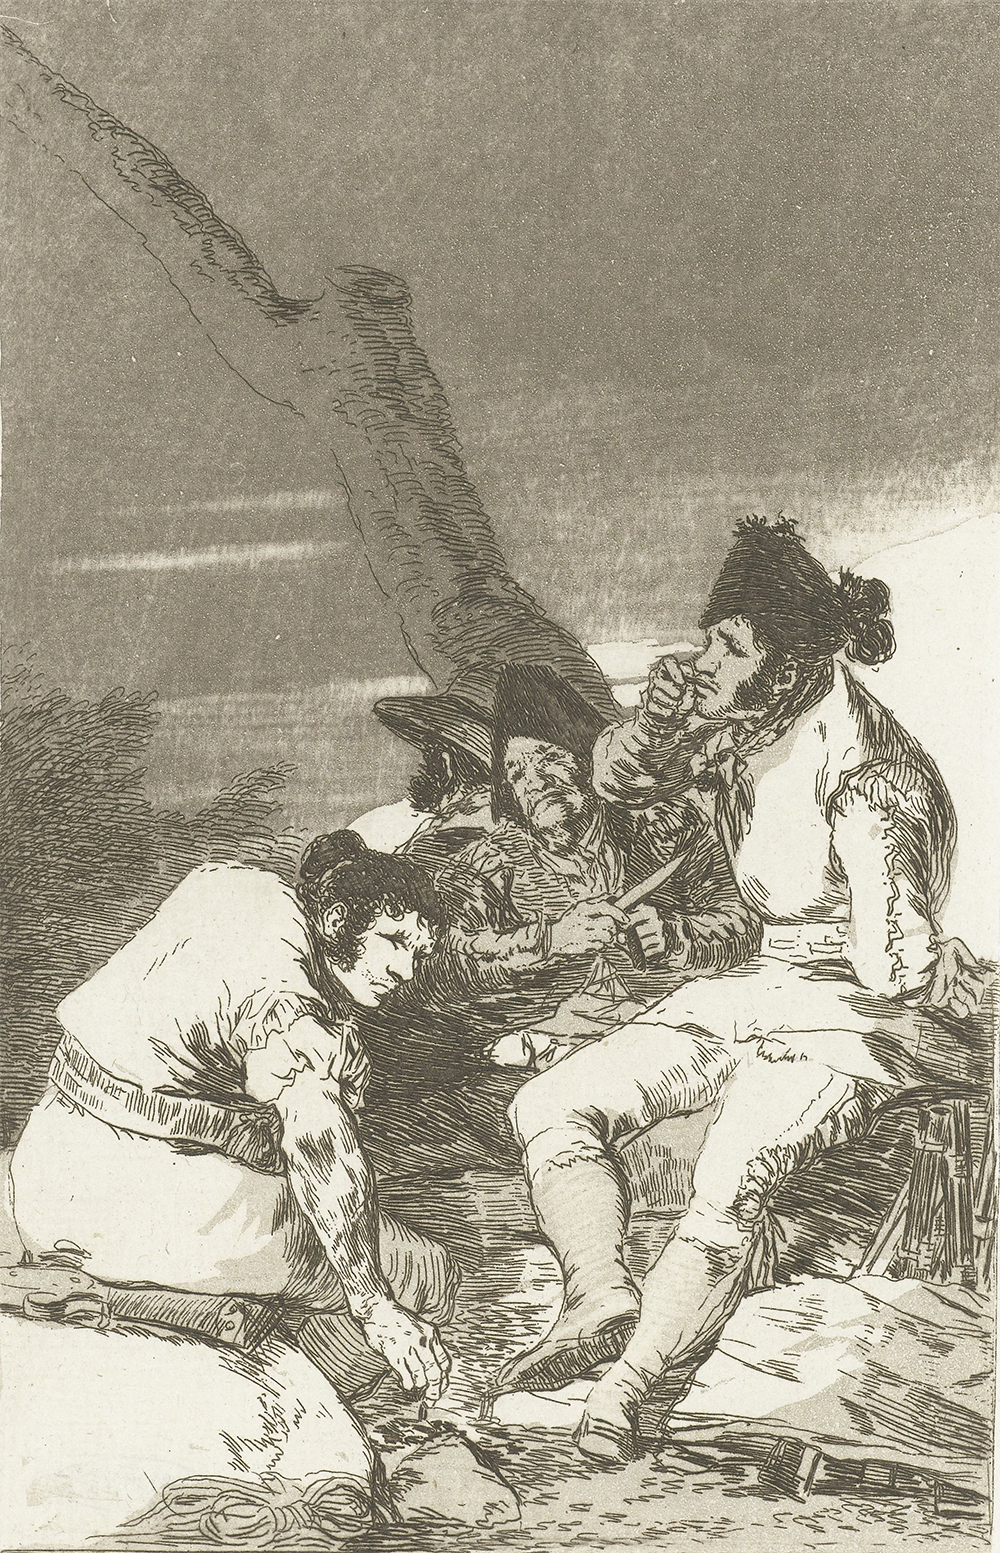 Four smugglers waiting at a tree, from the Los Caprichos series, by Goya, c. 1797–99. Rijksmuseum.